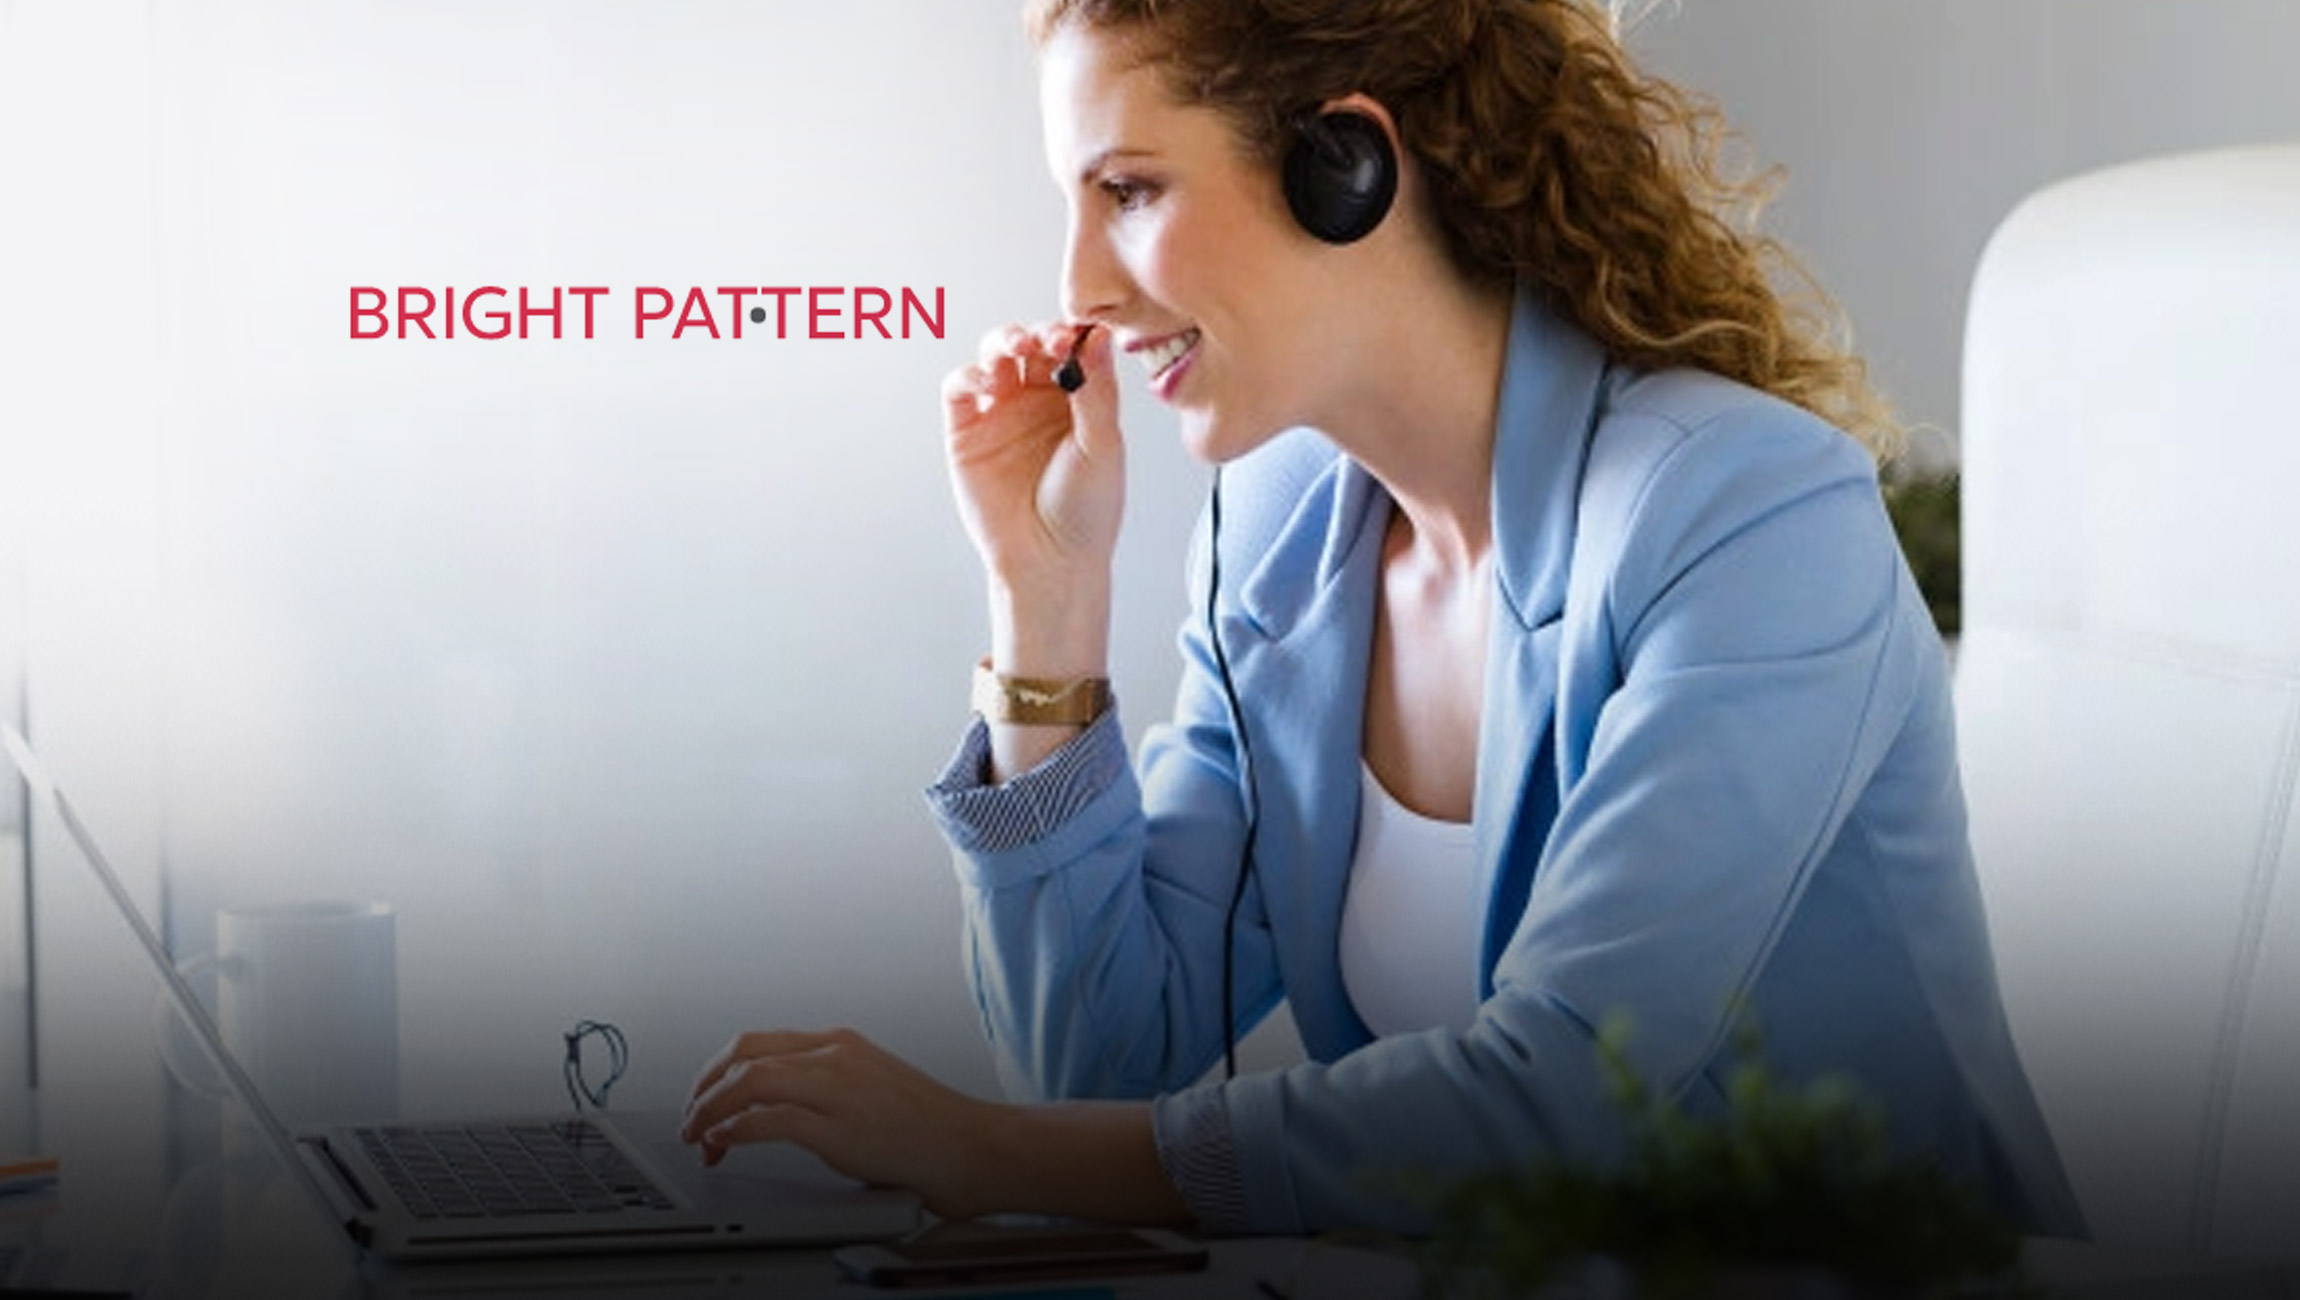 Leading Business Outsource Providers Are Turning to Bright Pattern Contact Center for Instant Impact on ROI and CSAT